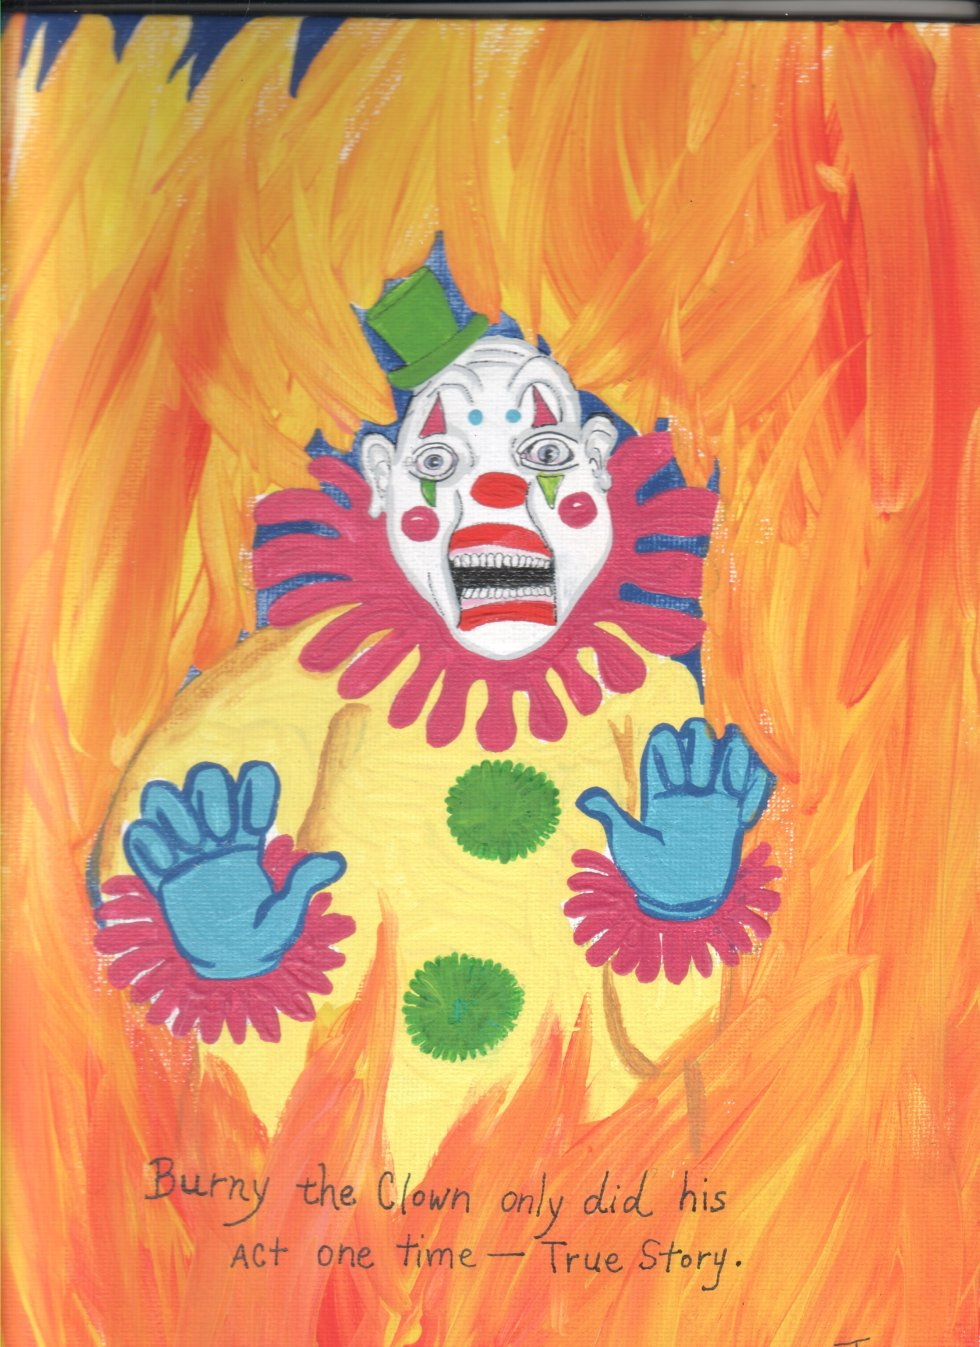 Burny the Clown only did his act once - true story